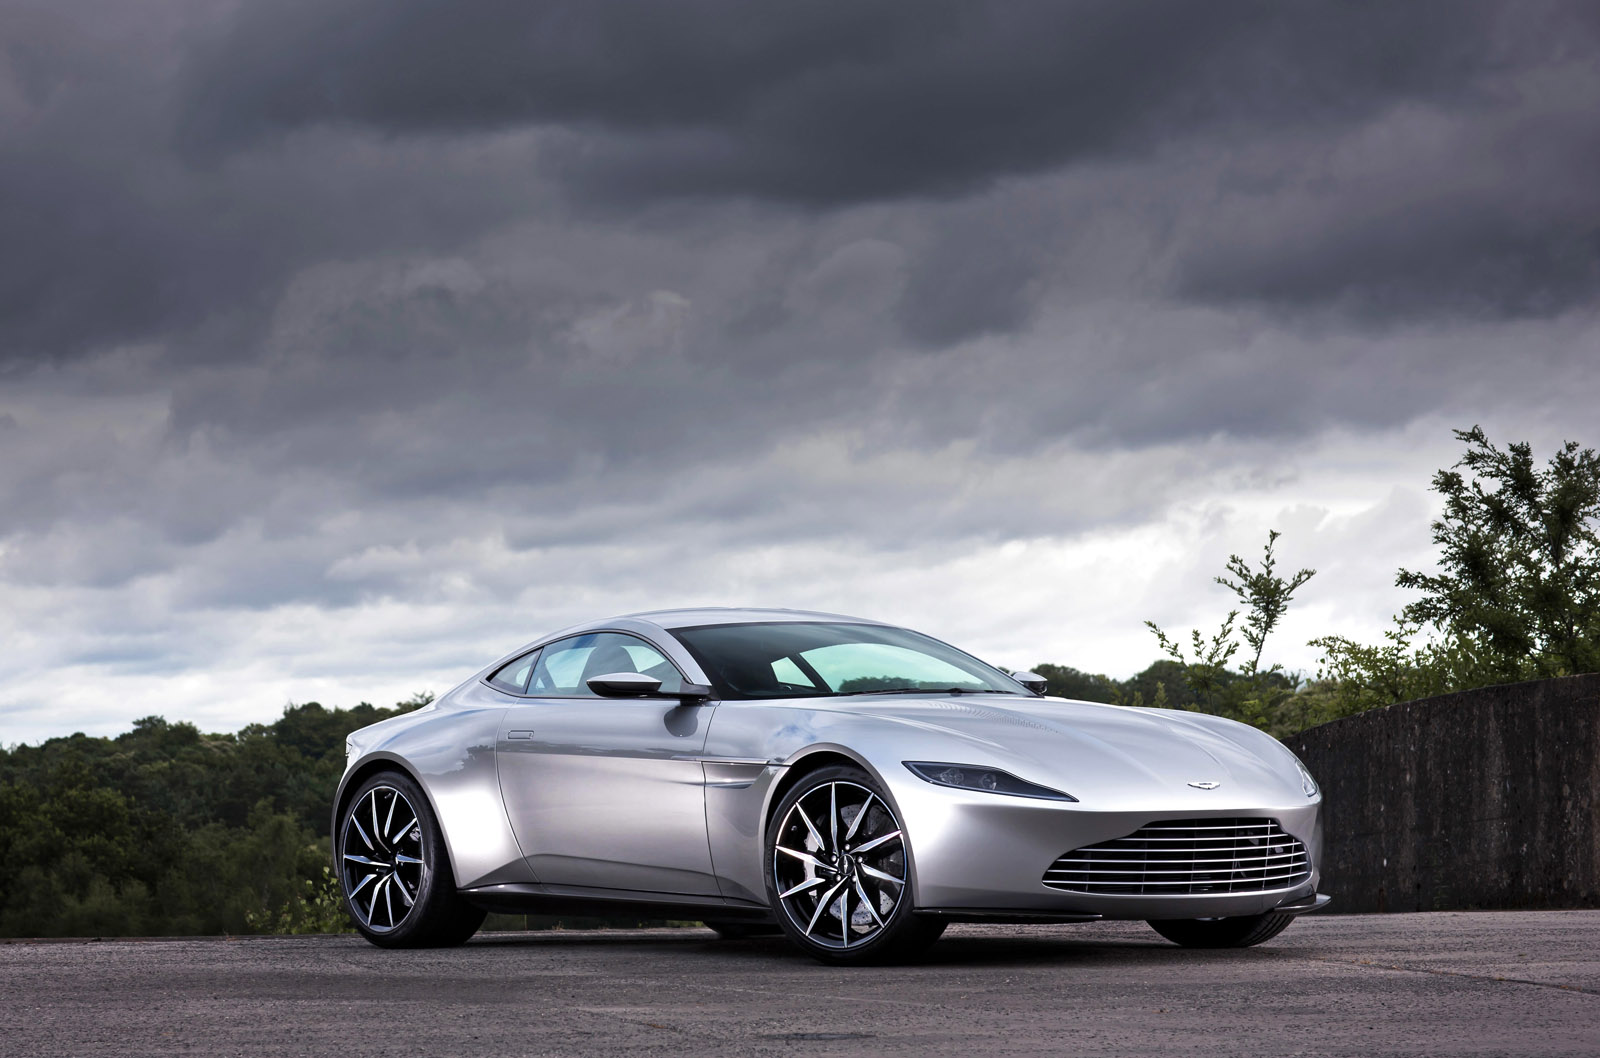 Mattel Announces James Bond S Aston Martin Db10 From The Movie Spectre Xdiecast